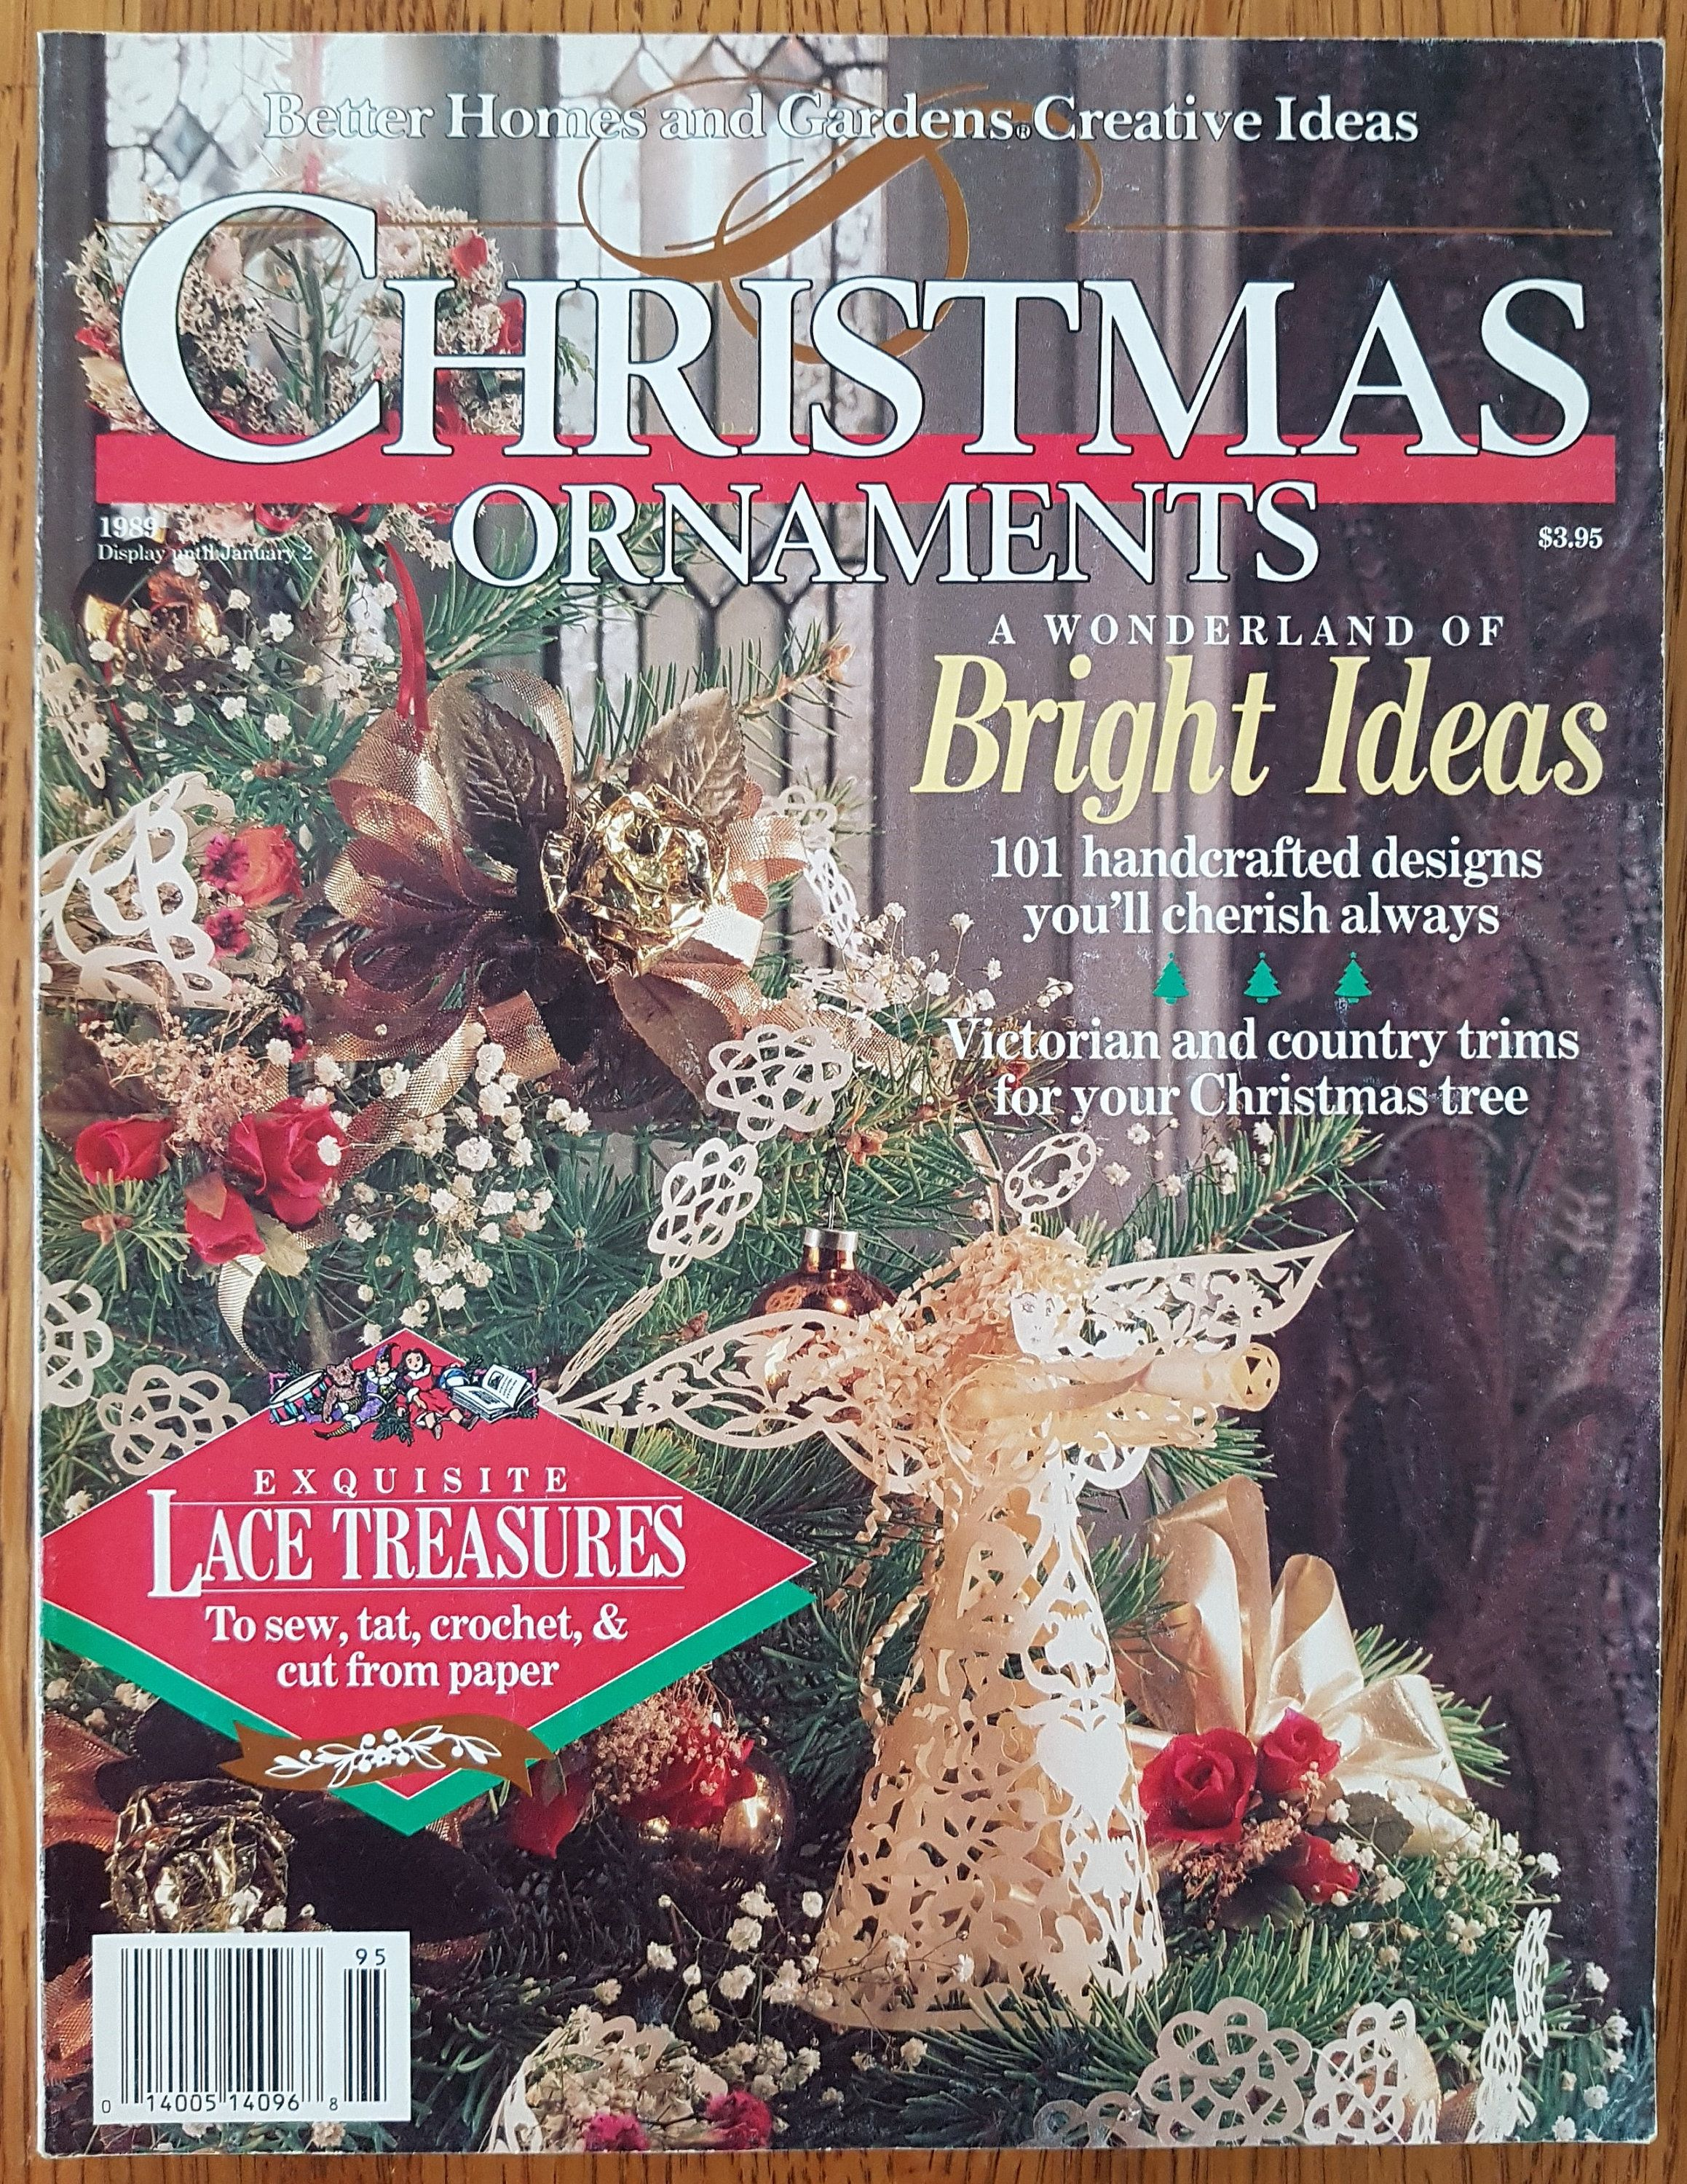 8061cd7668a8a3d41edc3874a43bc5f1 - Better Homes And Gardens Christmas Books